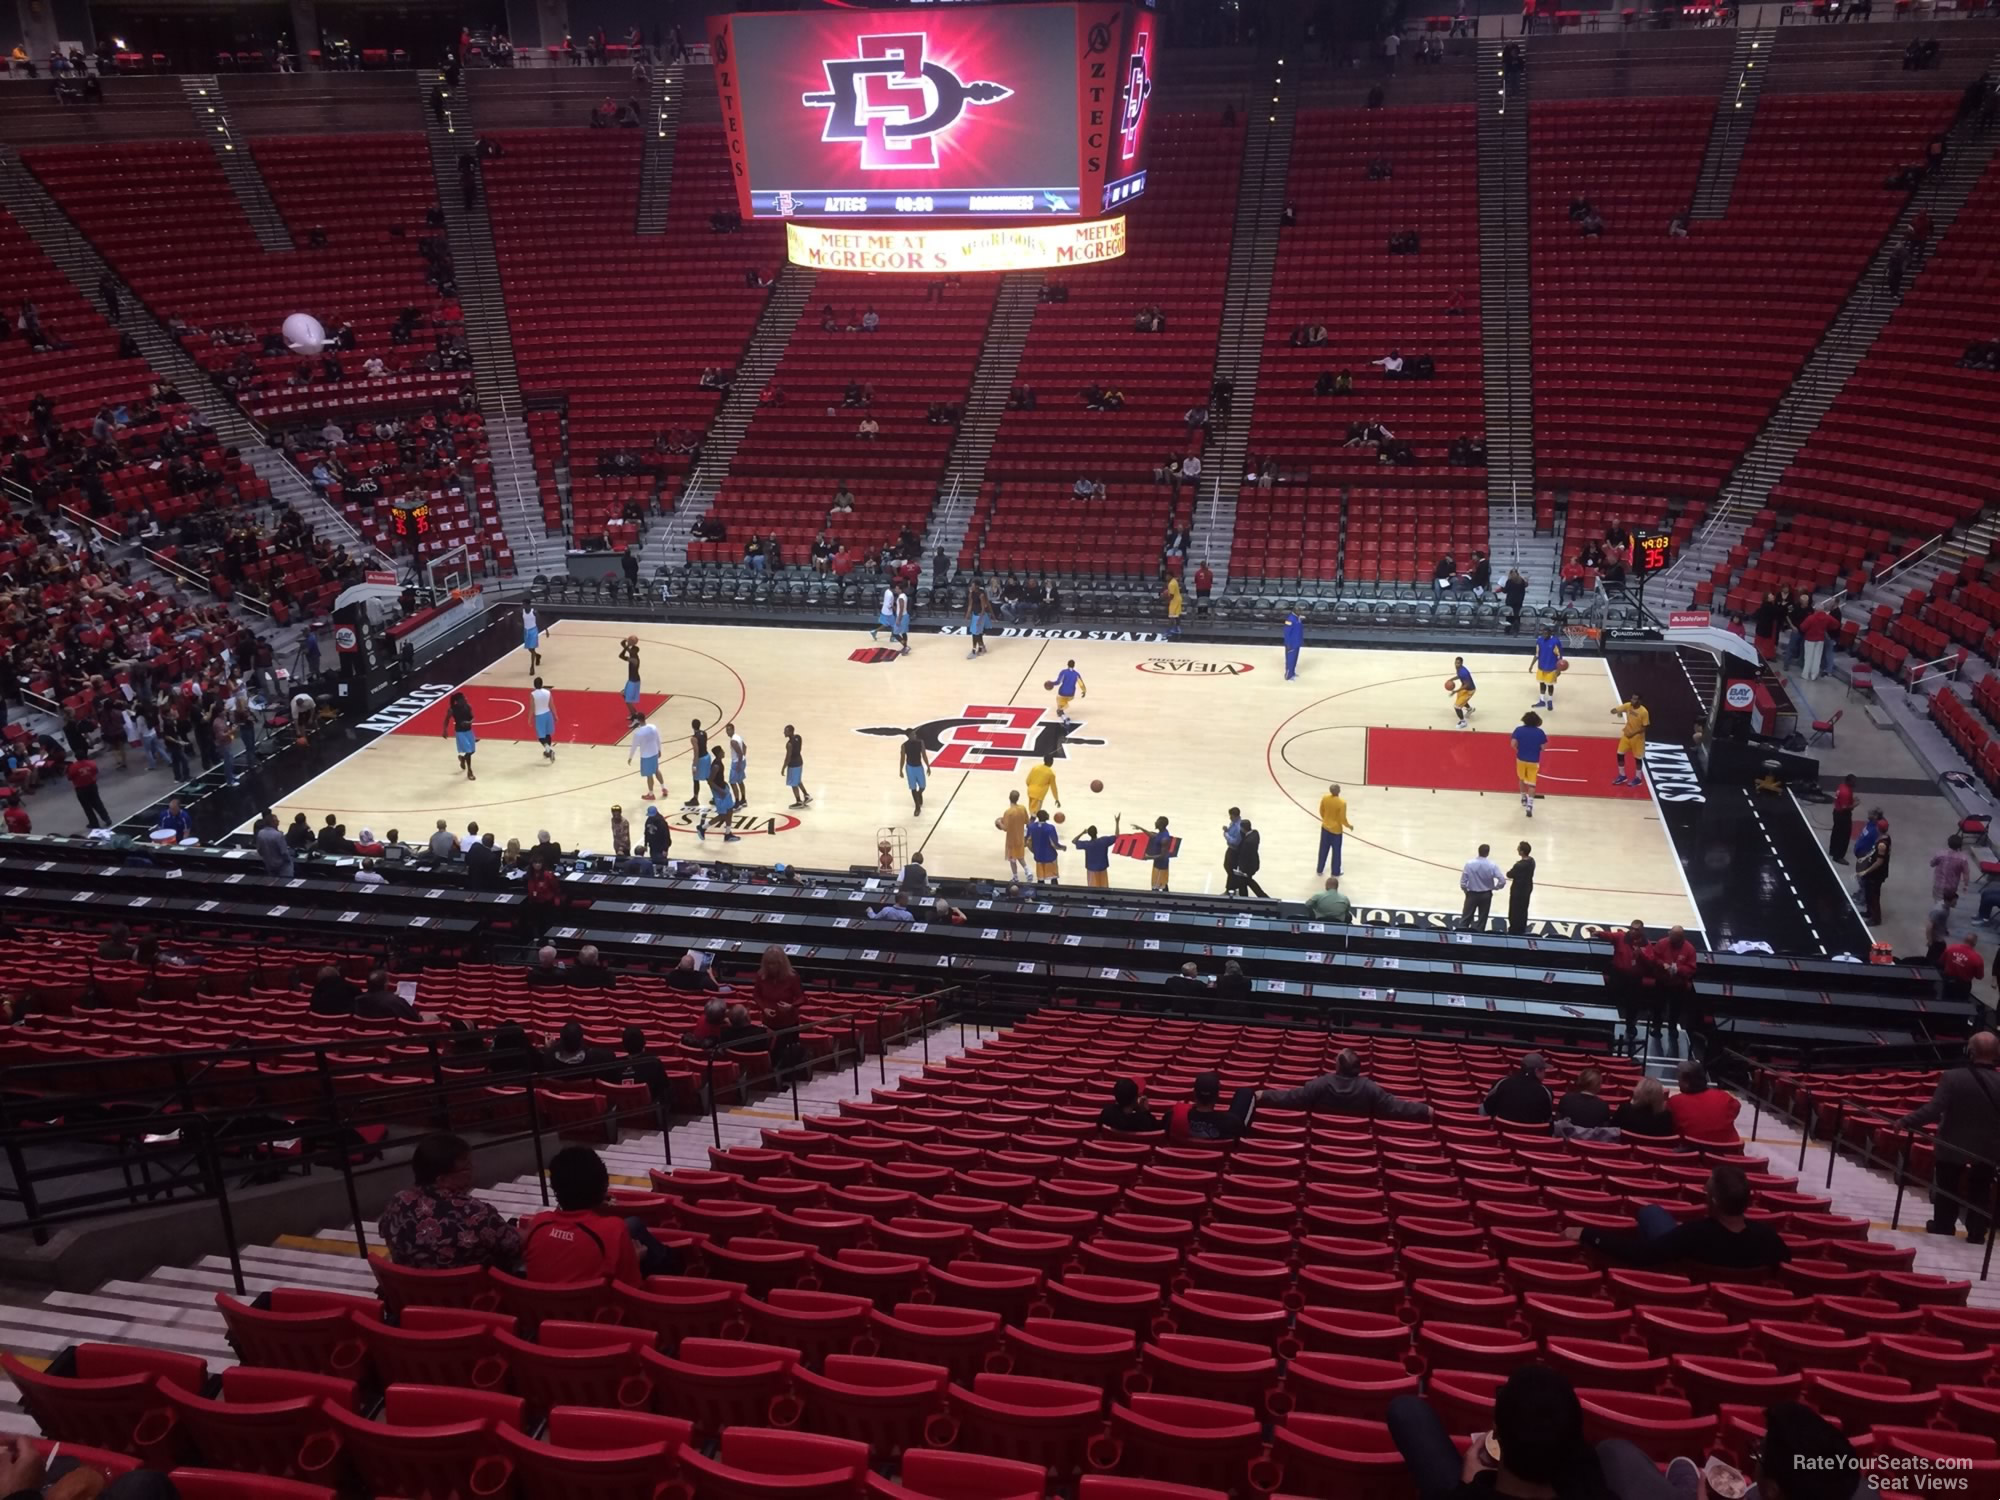 Section S seat view